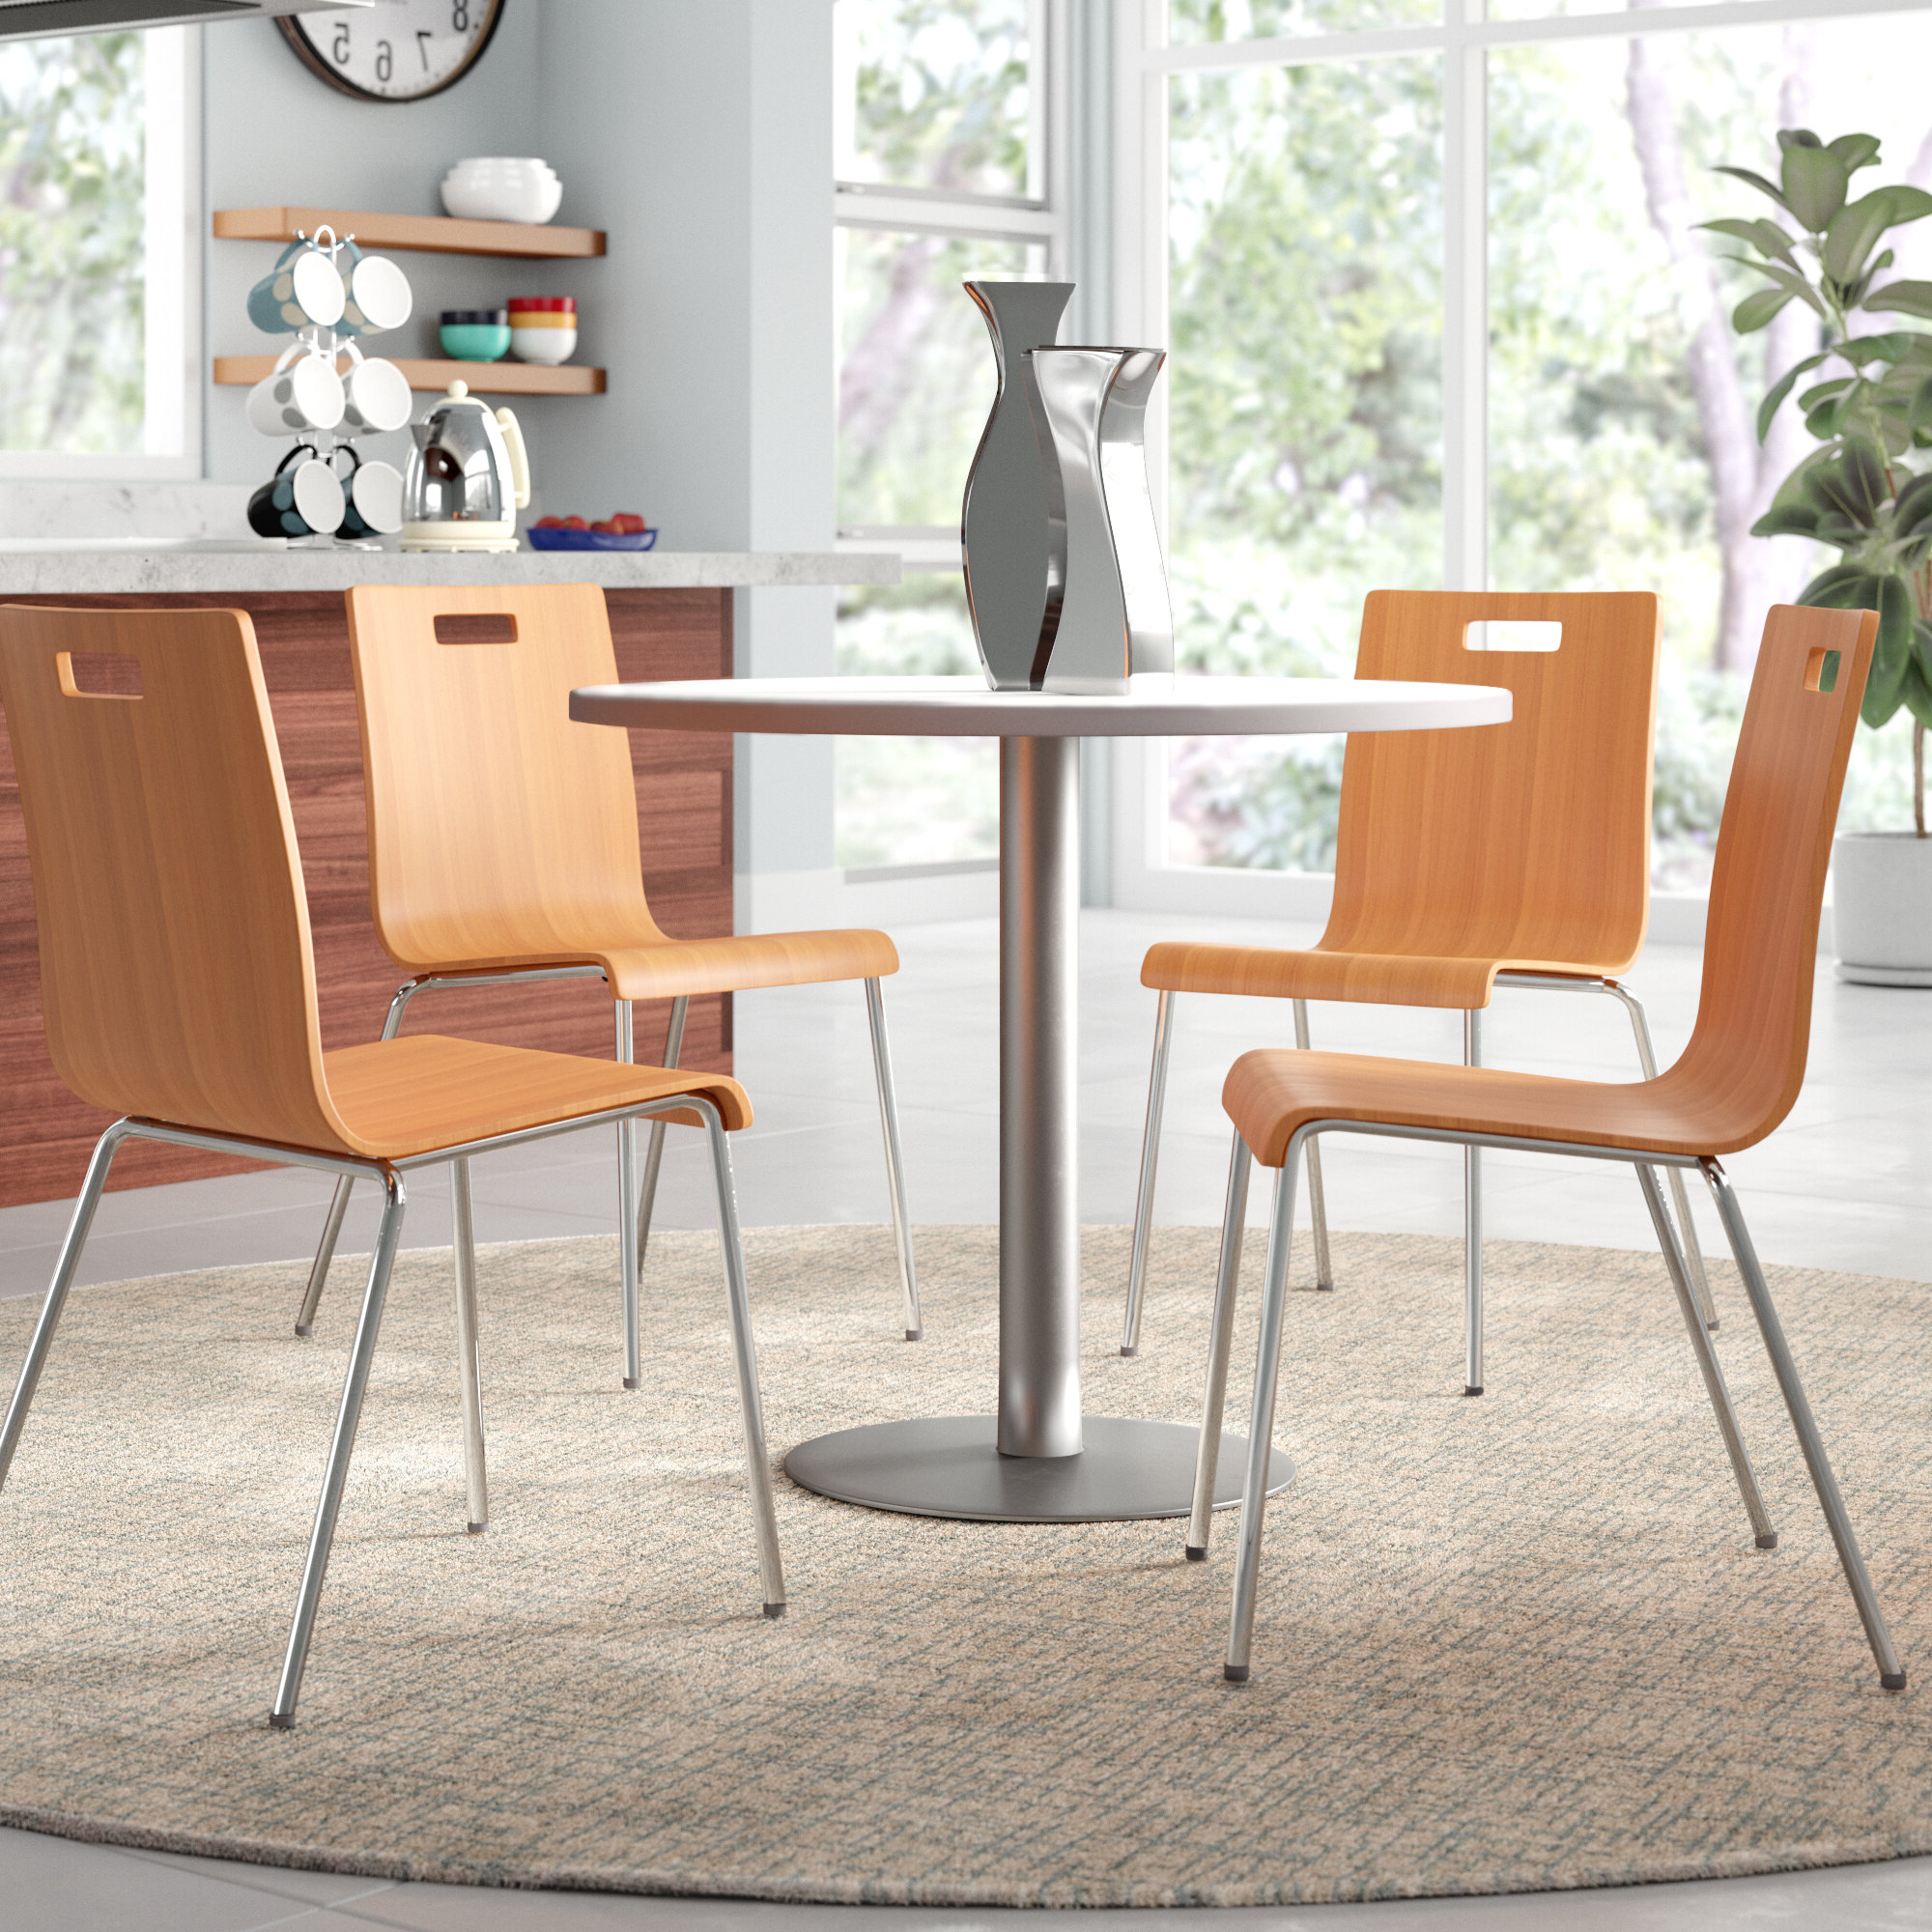 Kfi Seating 5 Piece Dining Set & Reviews (Gallery 2 of 25)